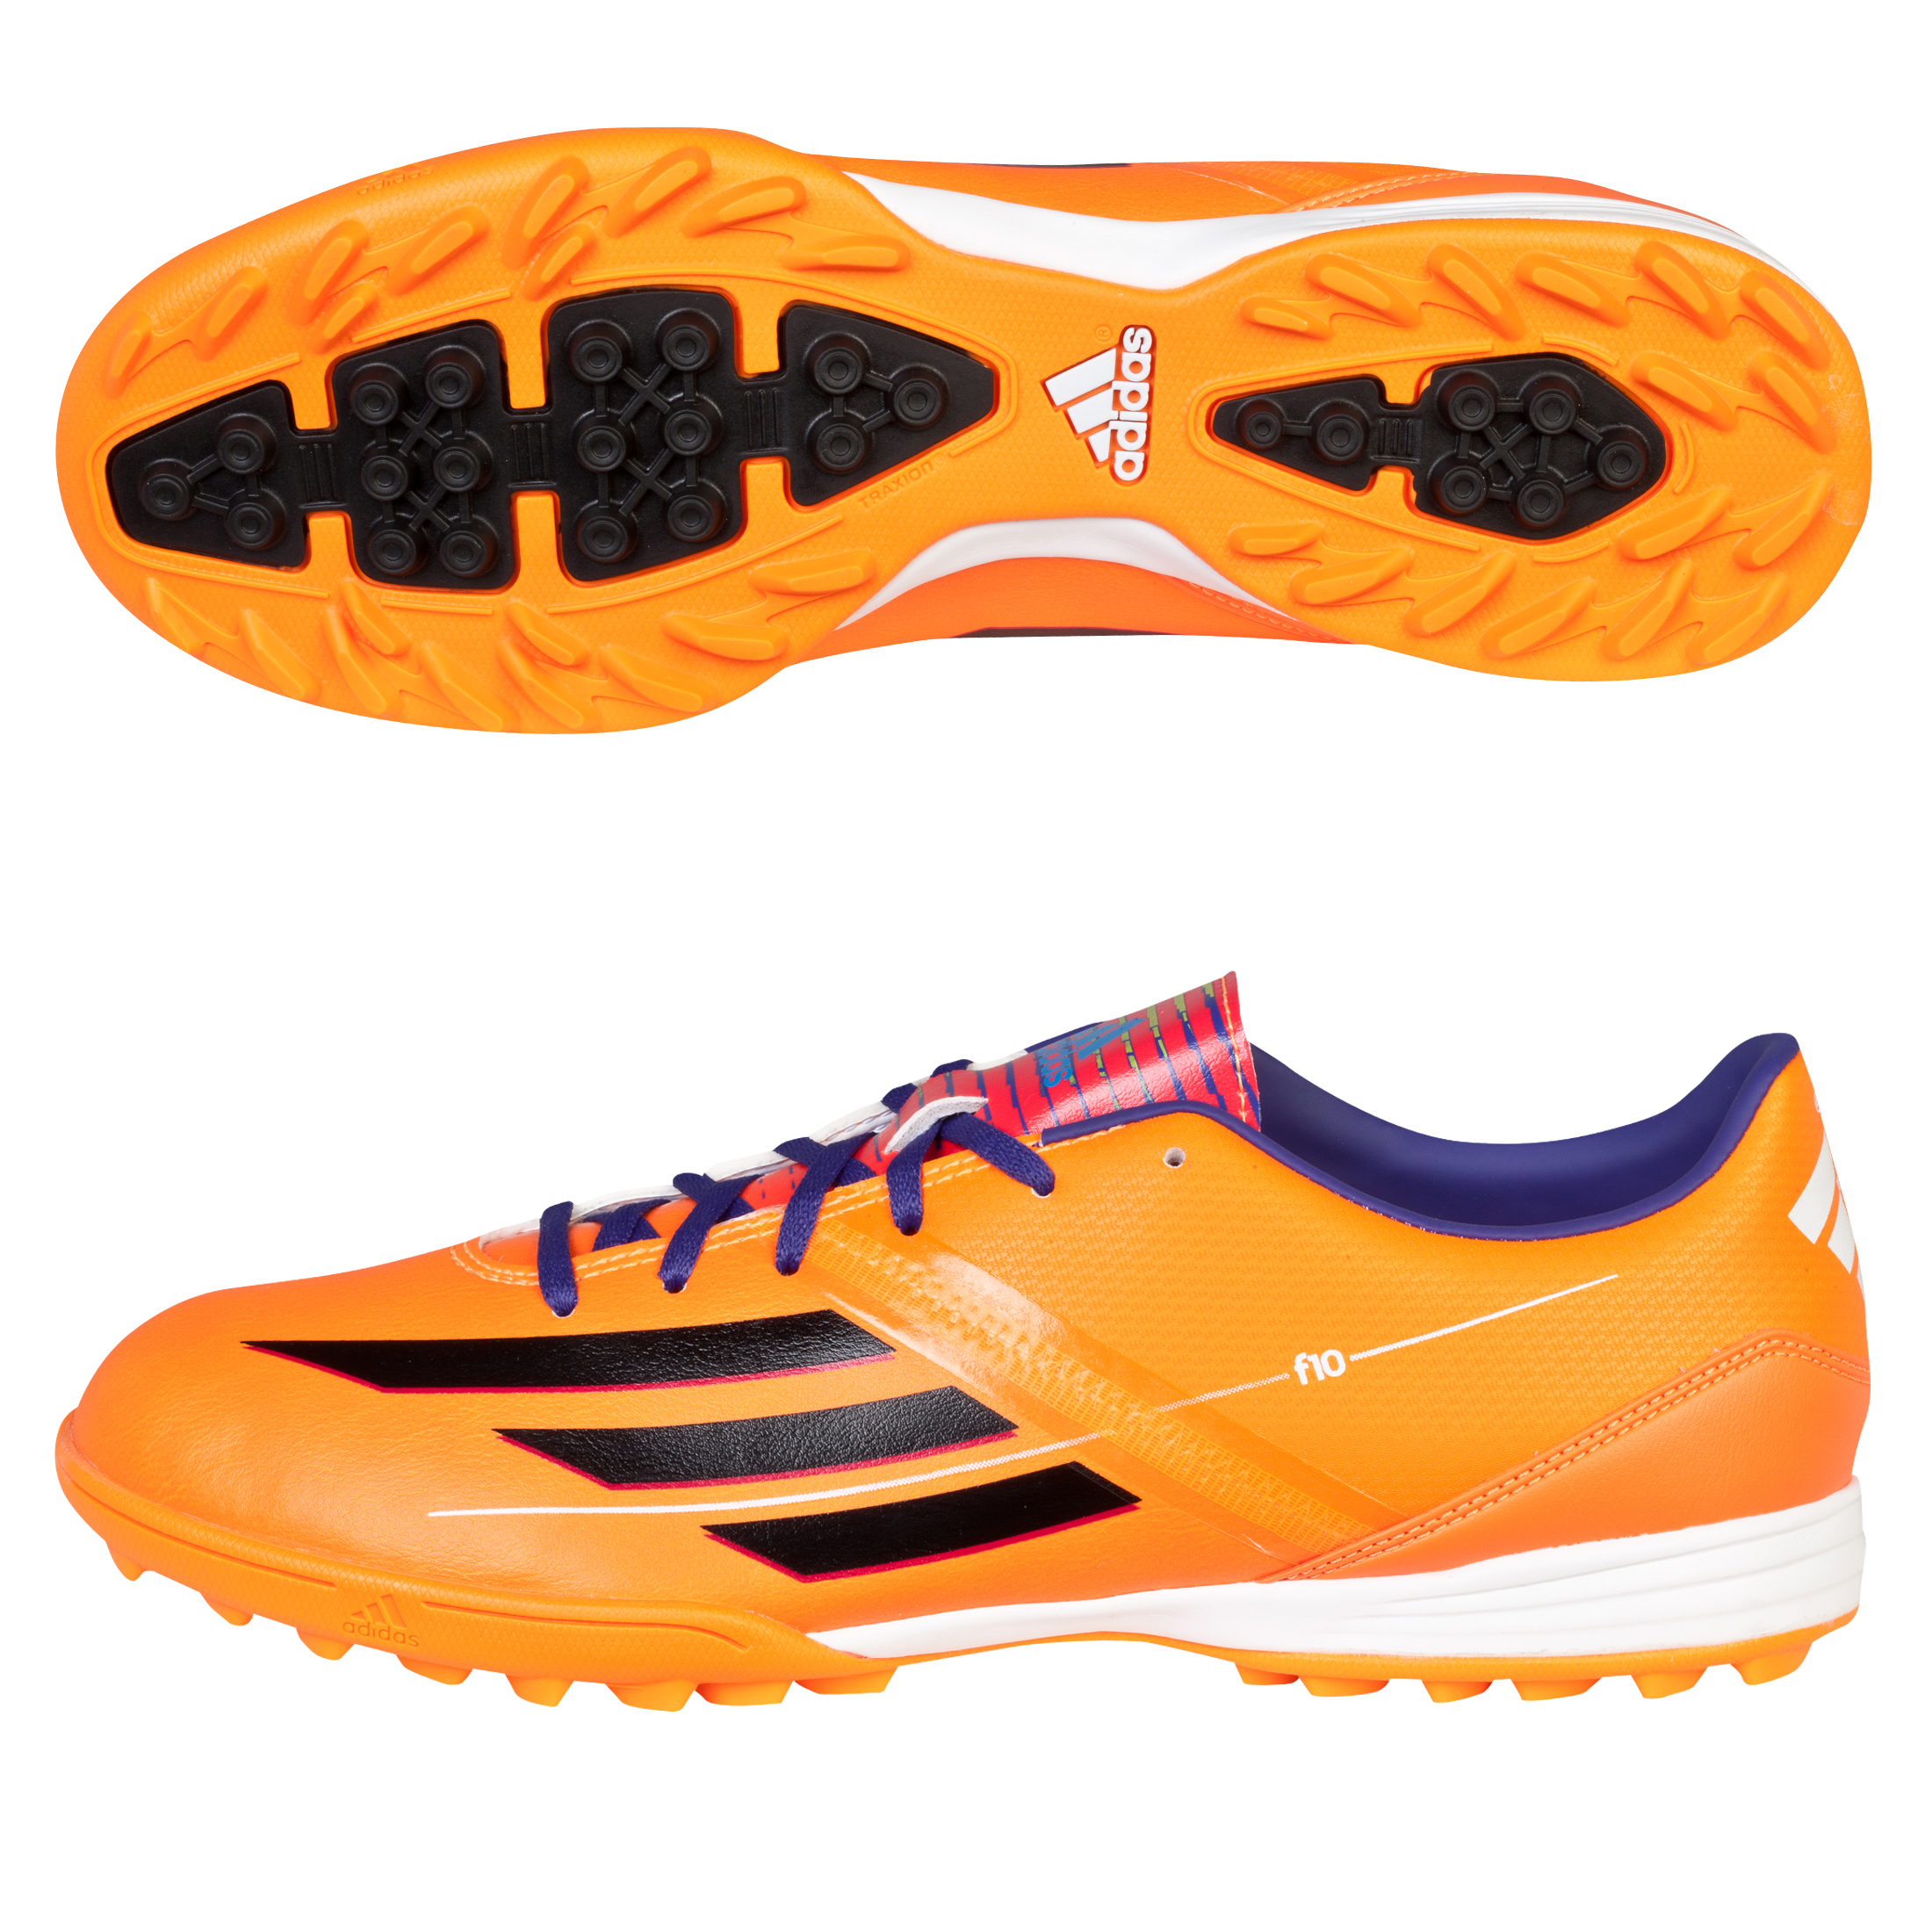 Adidas F10 TRX Astroturf Trainers Orange